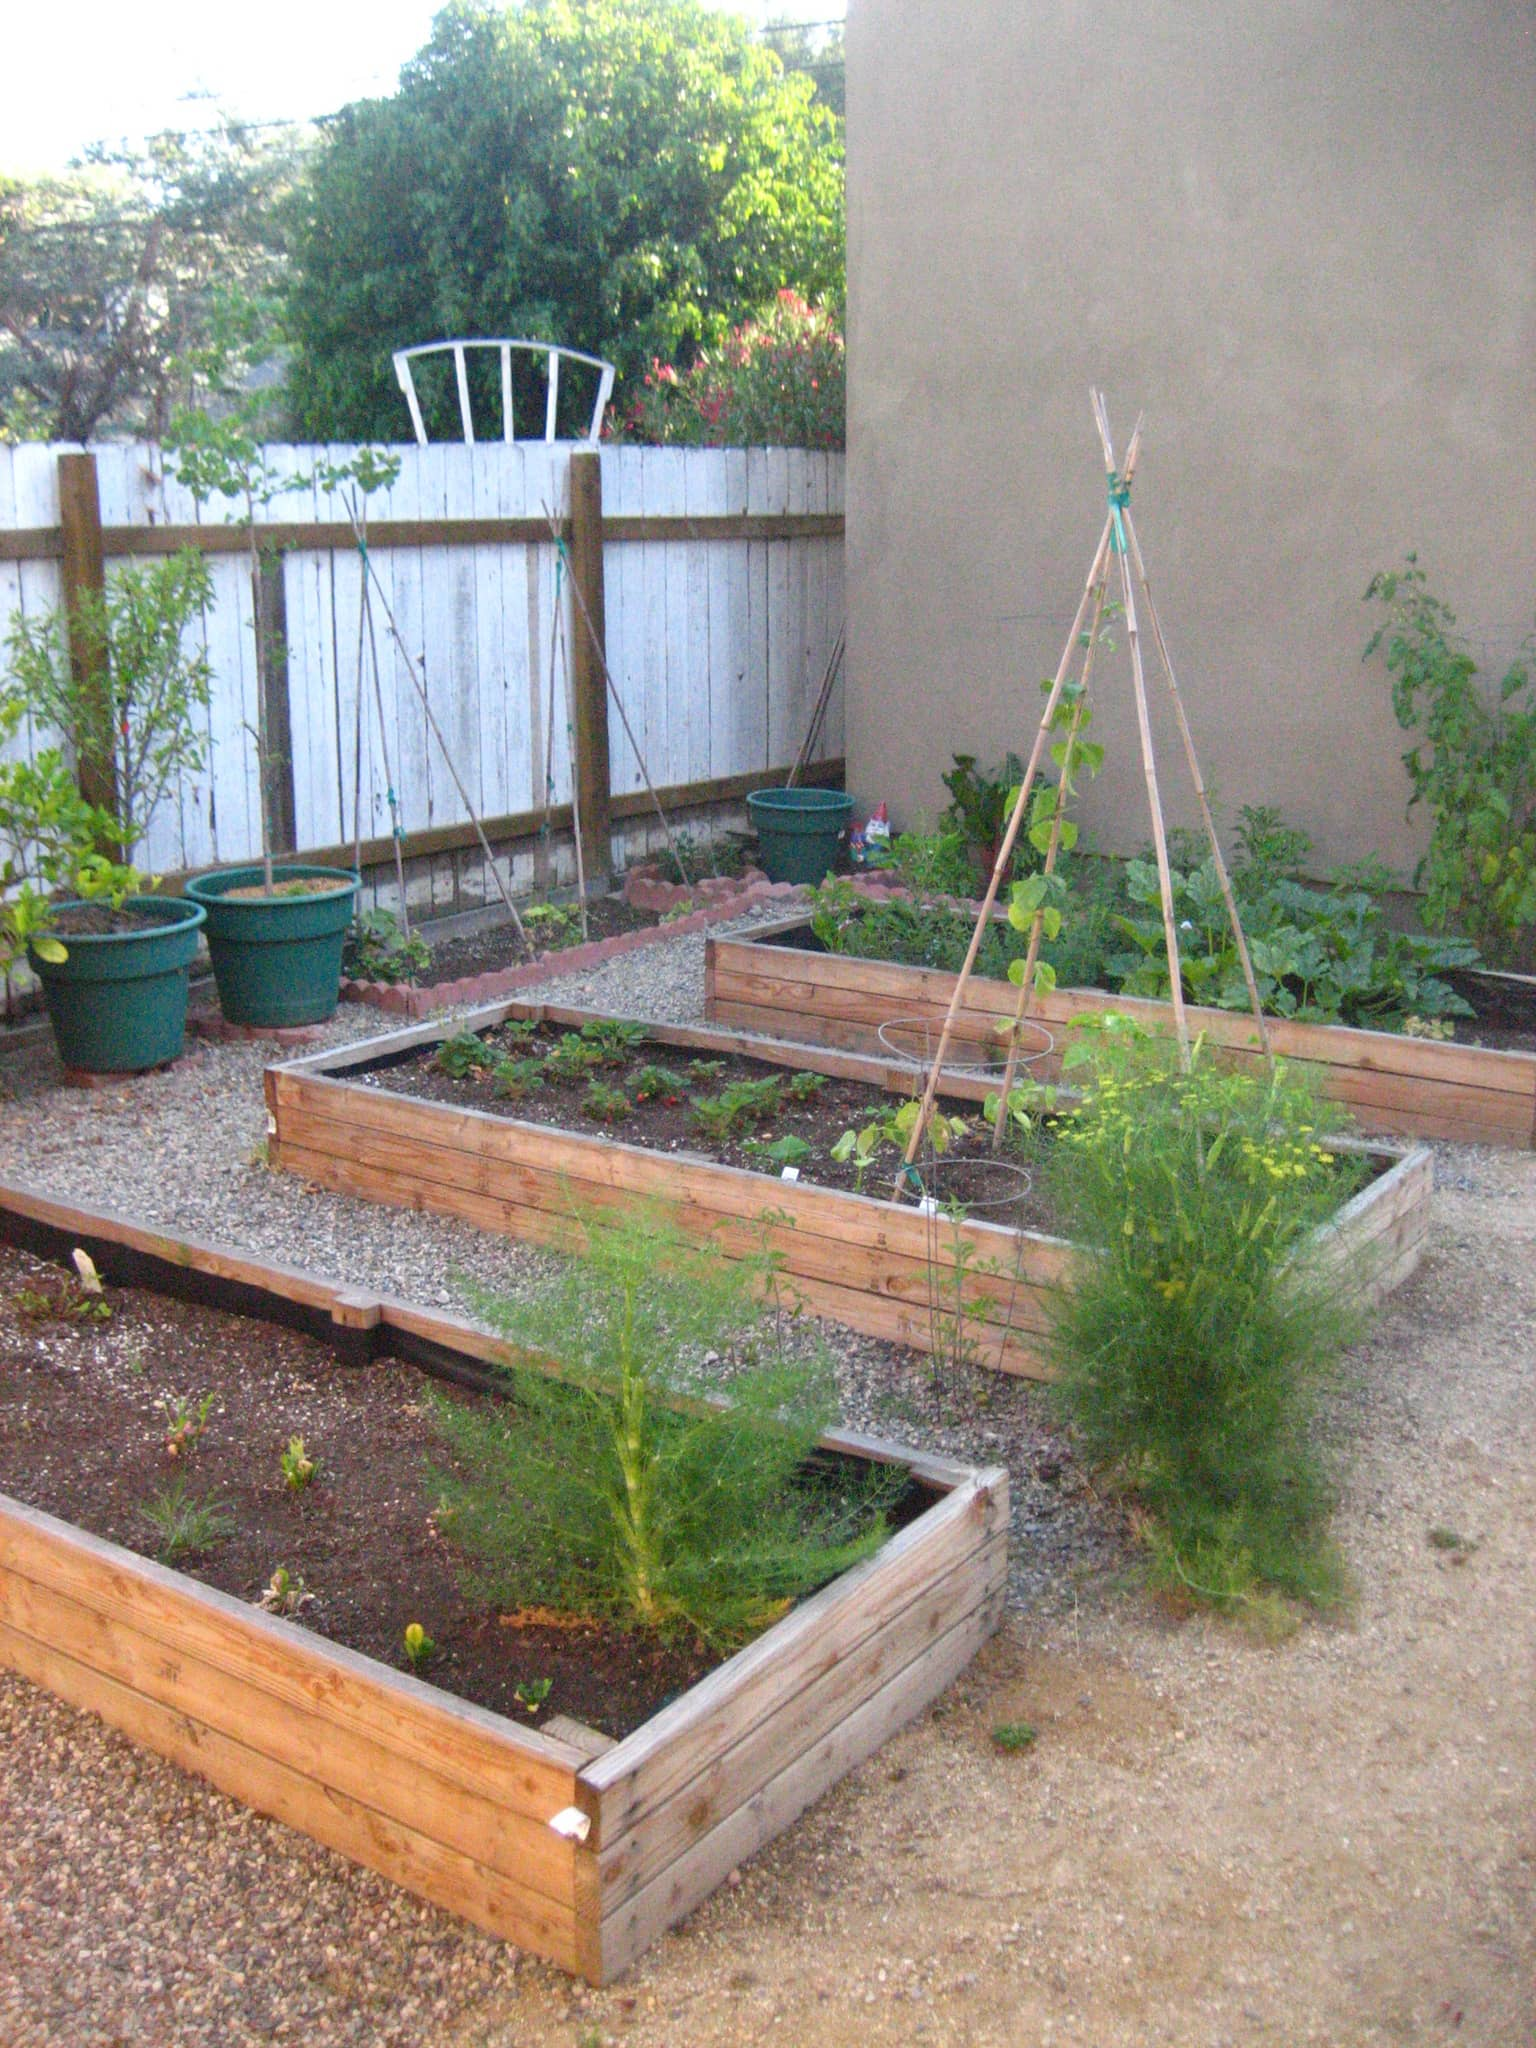 My Great Outdoors: April's Aromatic Herb Beds: gallery image 1